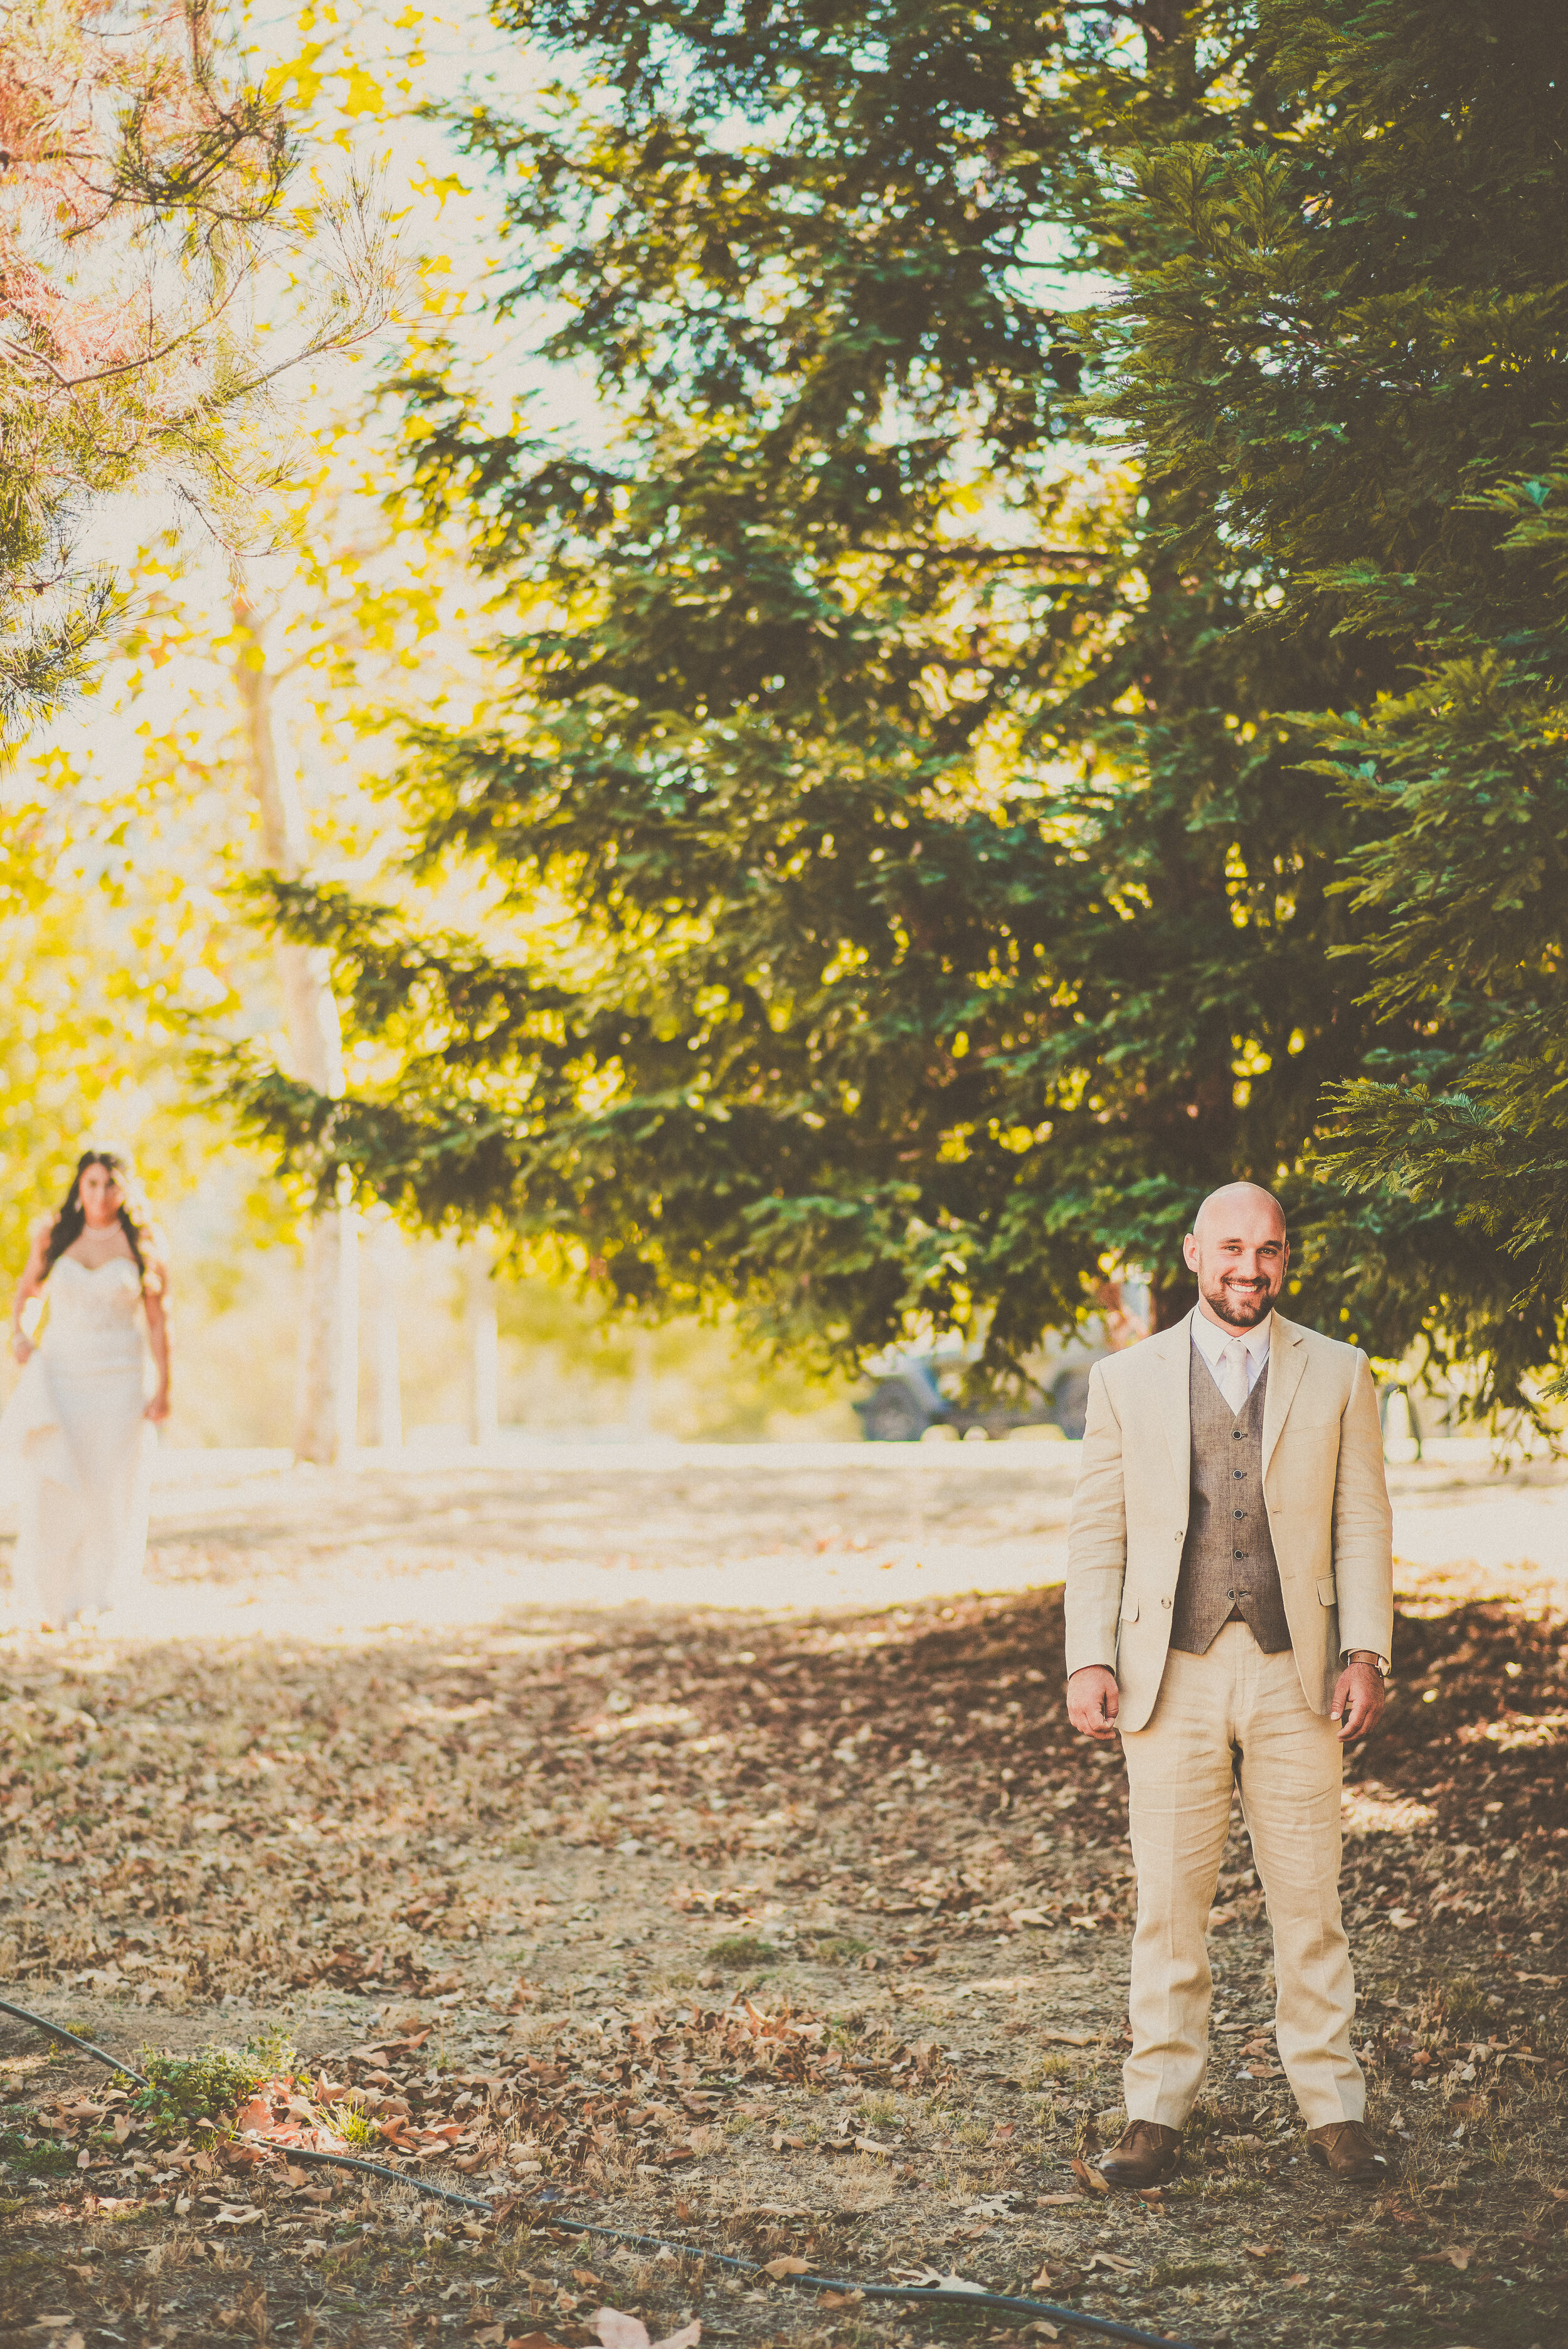 Motter Wedding - First Look-1.jpg